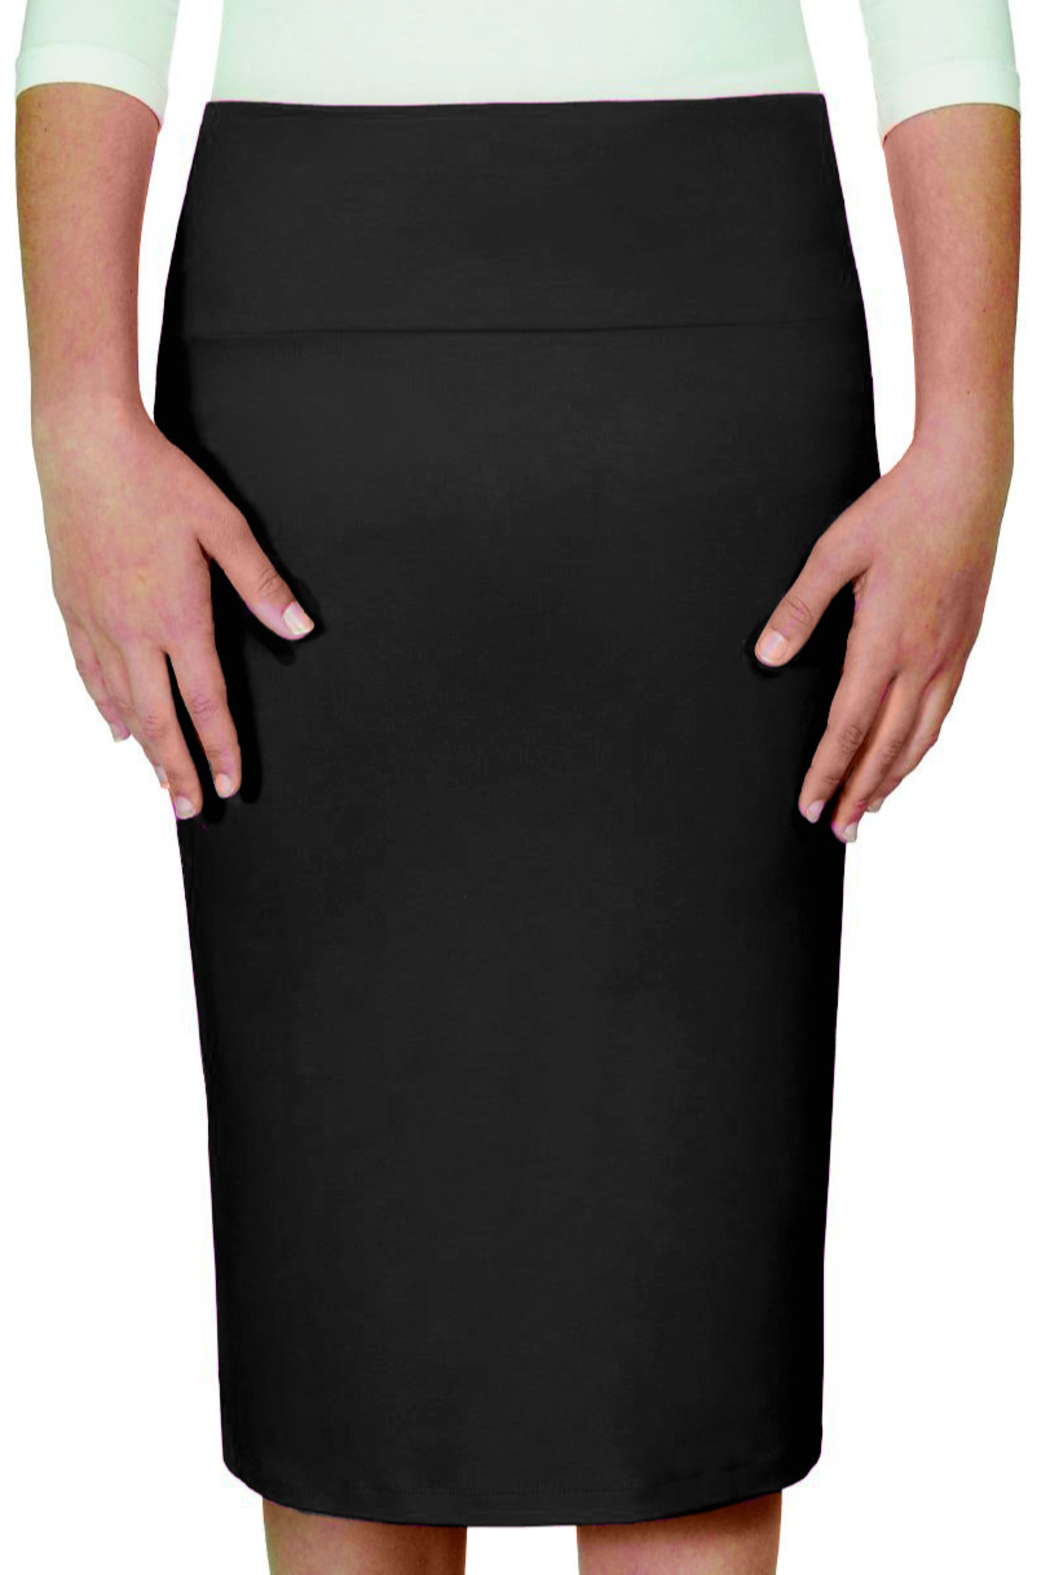 Kosher Casual Stretchy Pencil Skirt Viscose Spandex Knee Length for Girls - Front Cropped Image